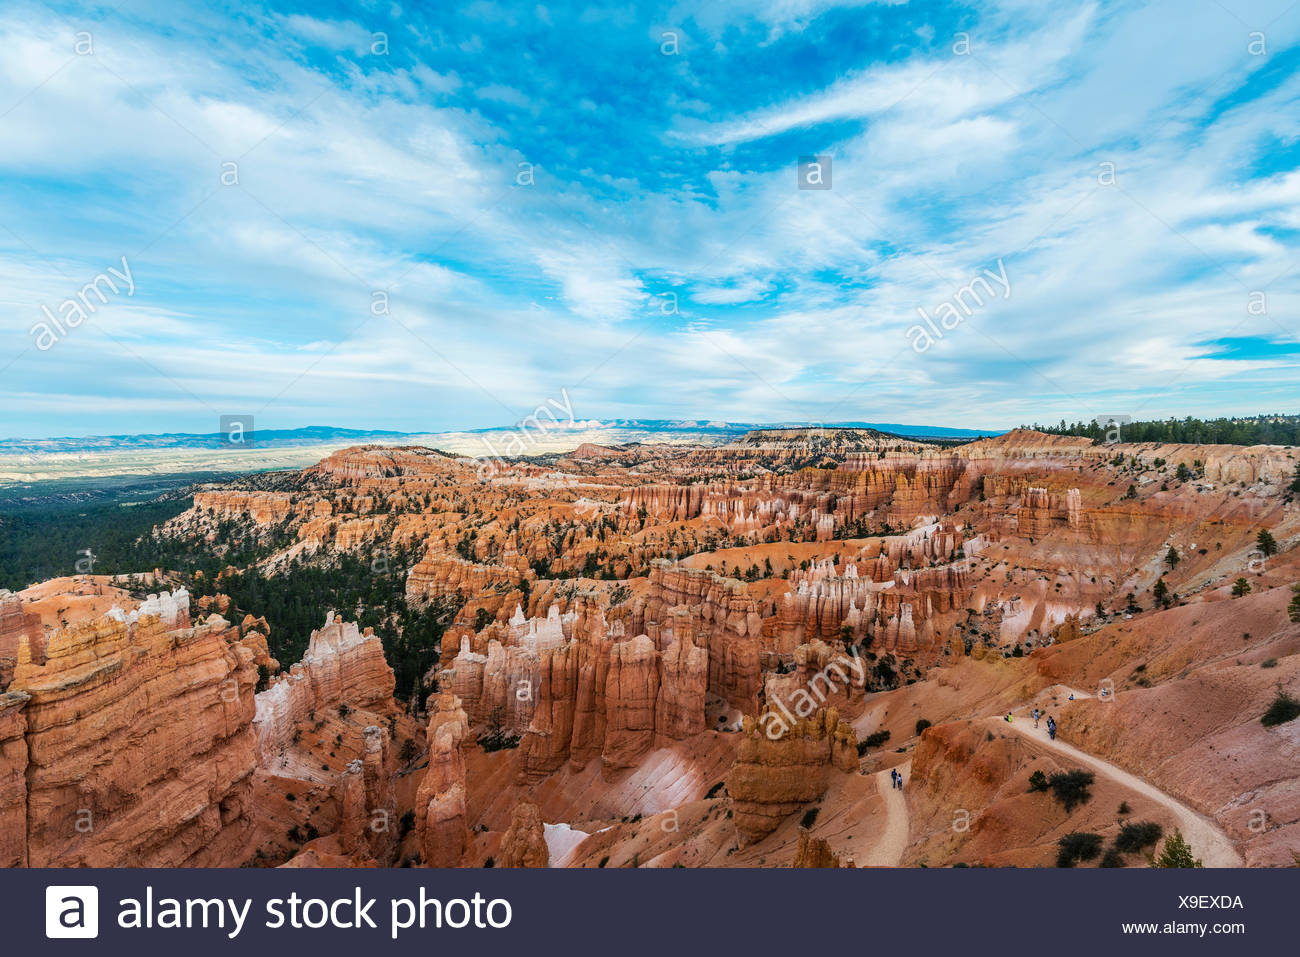 View of Bryce Canyon, reddish rocky landscape with Hoodoos, sandstone formations, Bryce Canyon National Park, Utah, USA - Stock Image